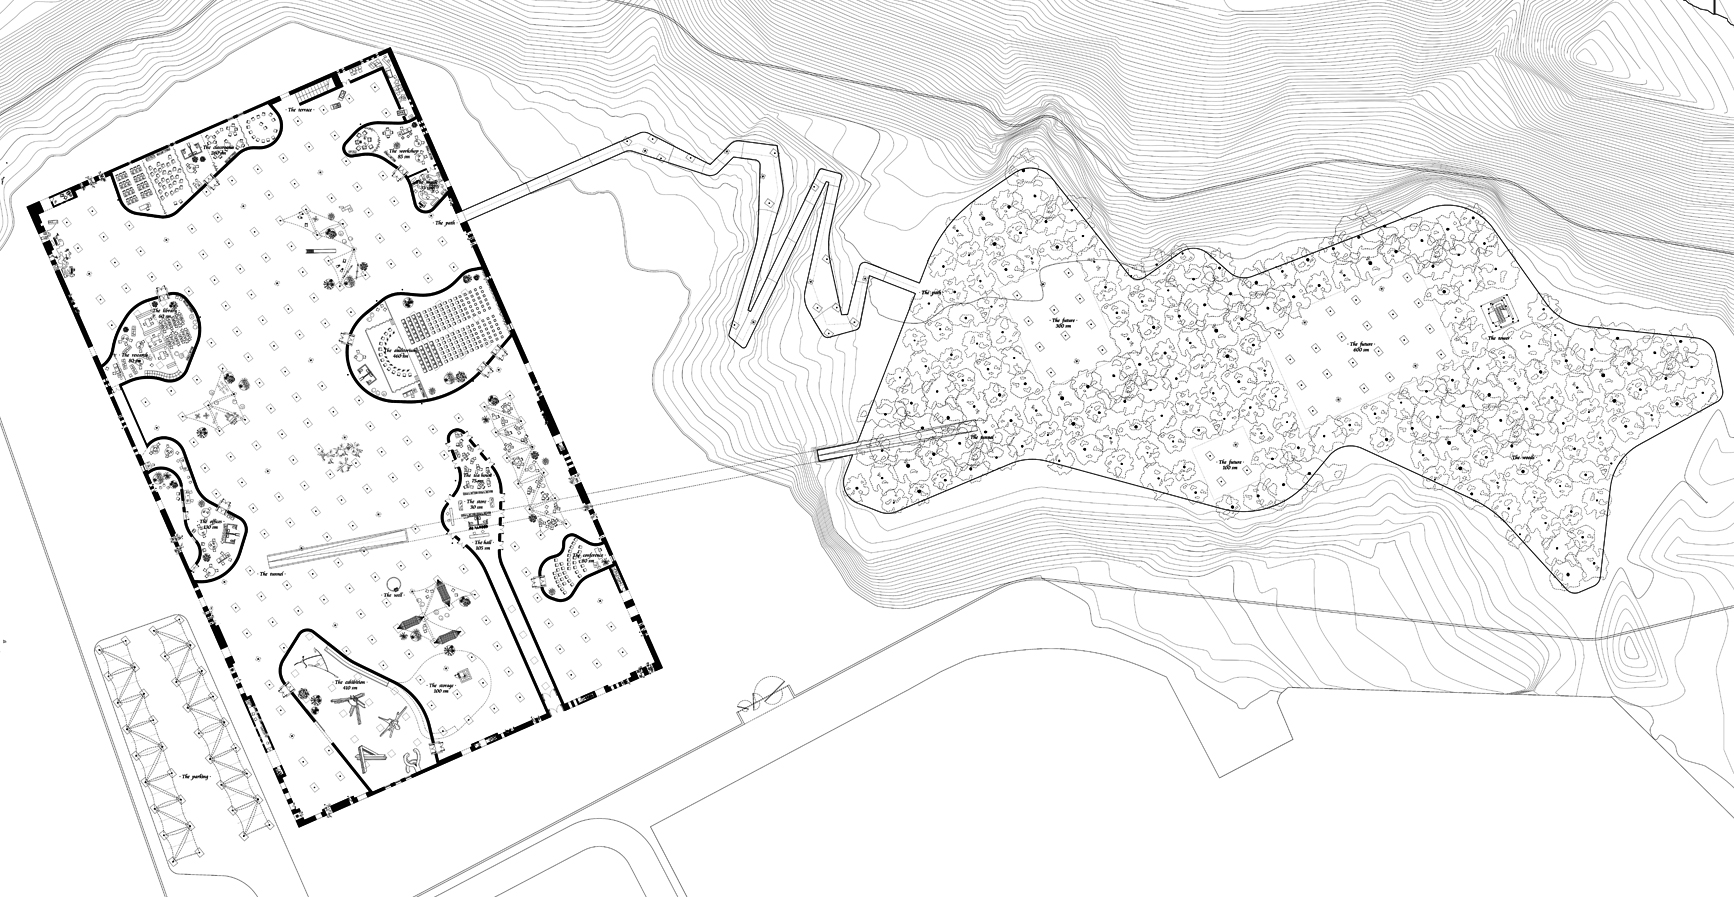 Plan Bamiyan Cultural Centre by Pedro Pitarch